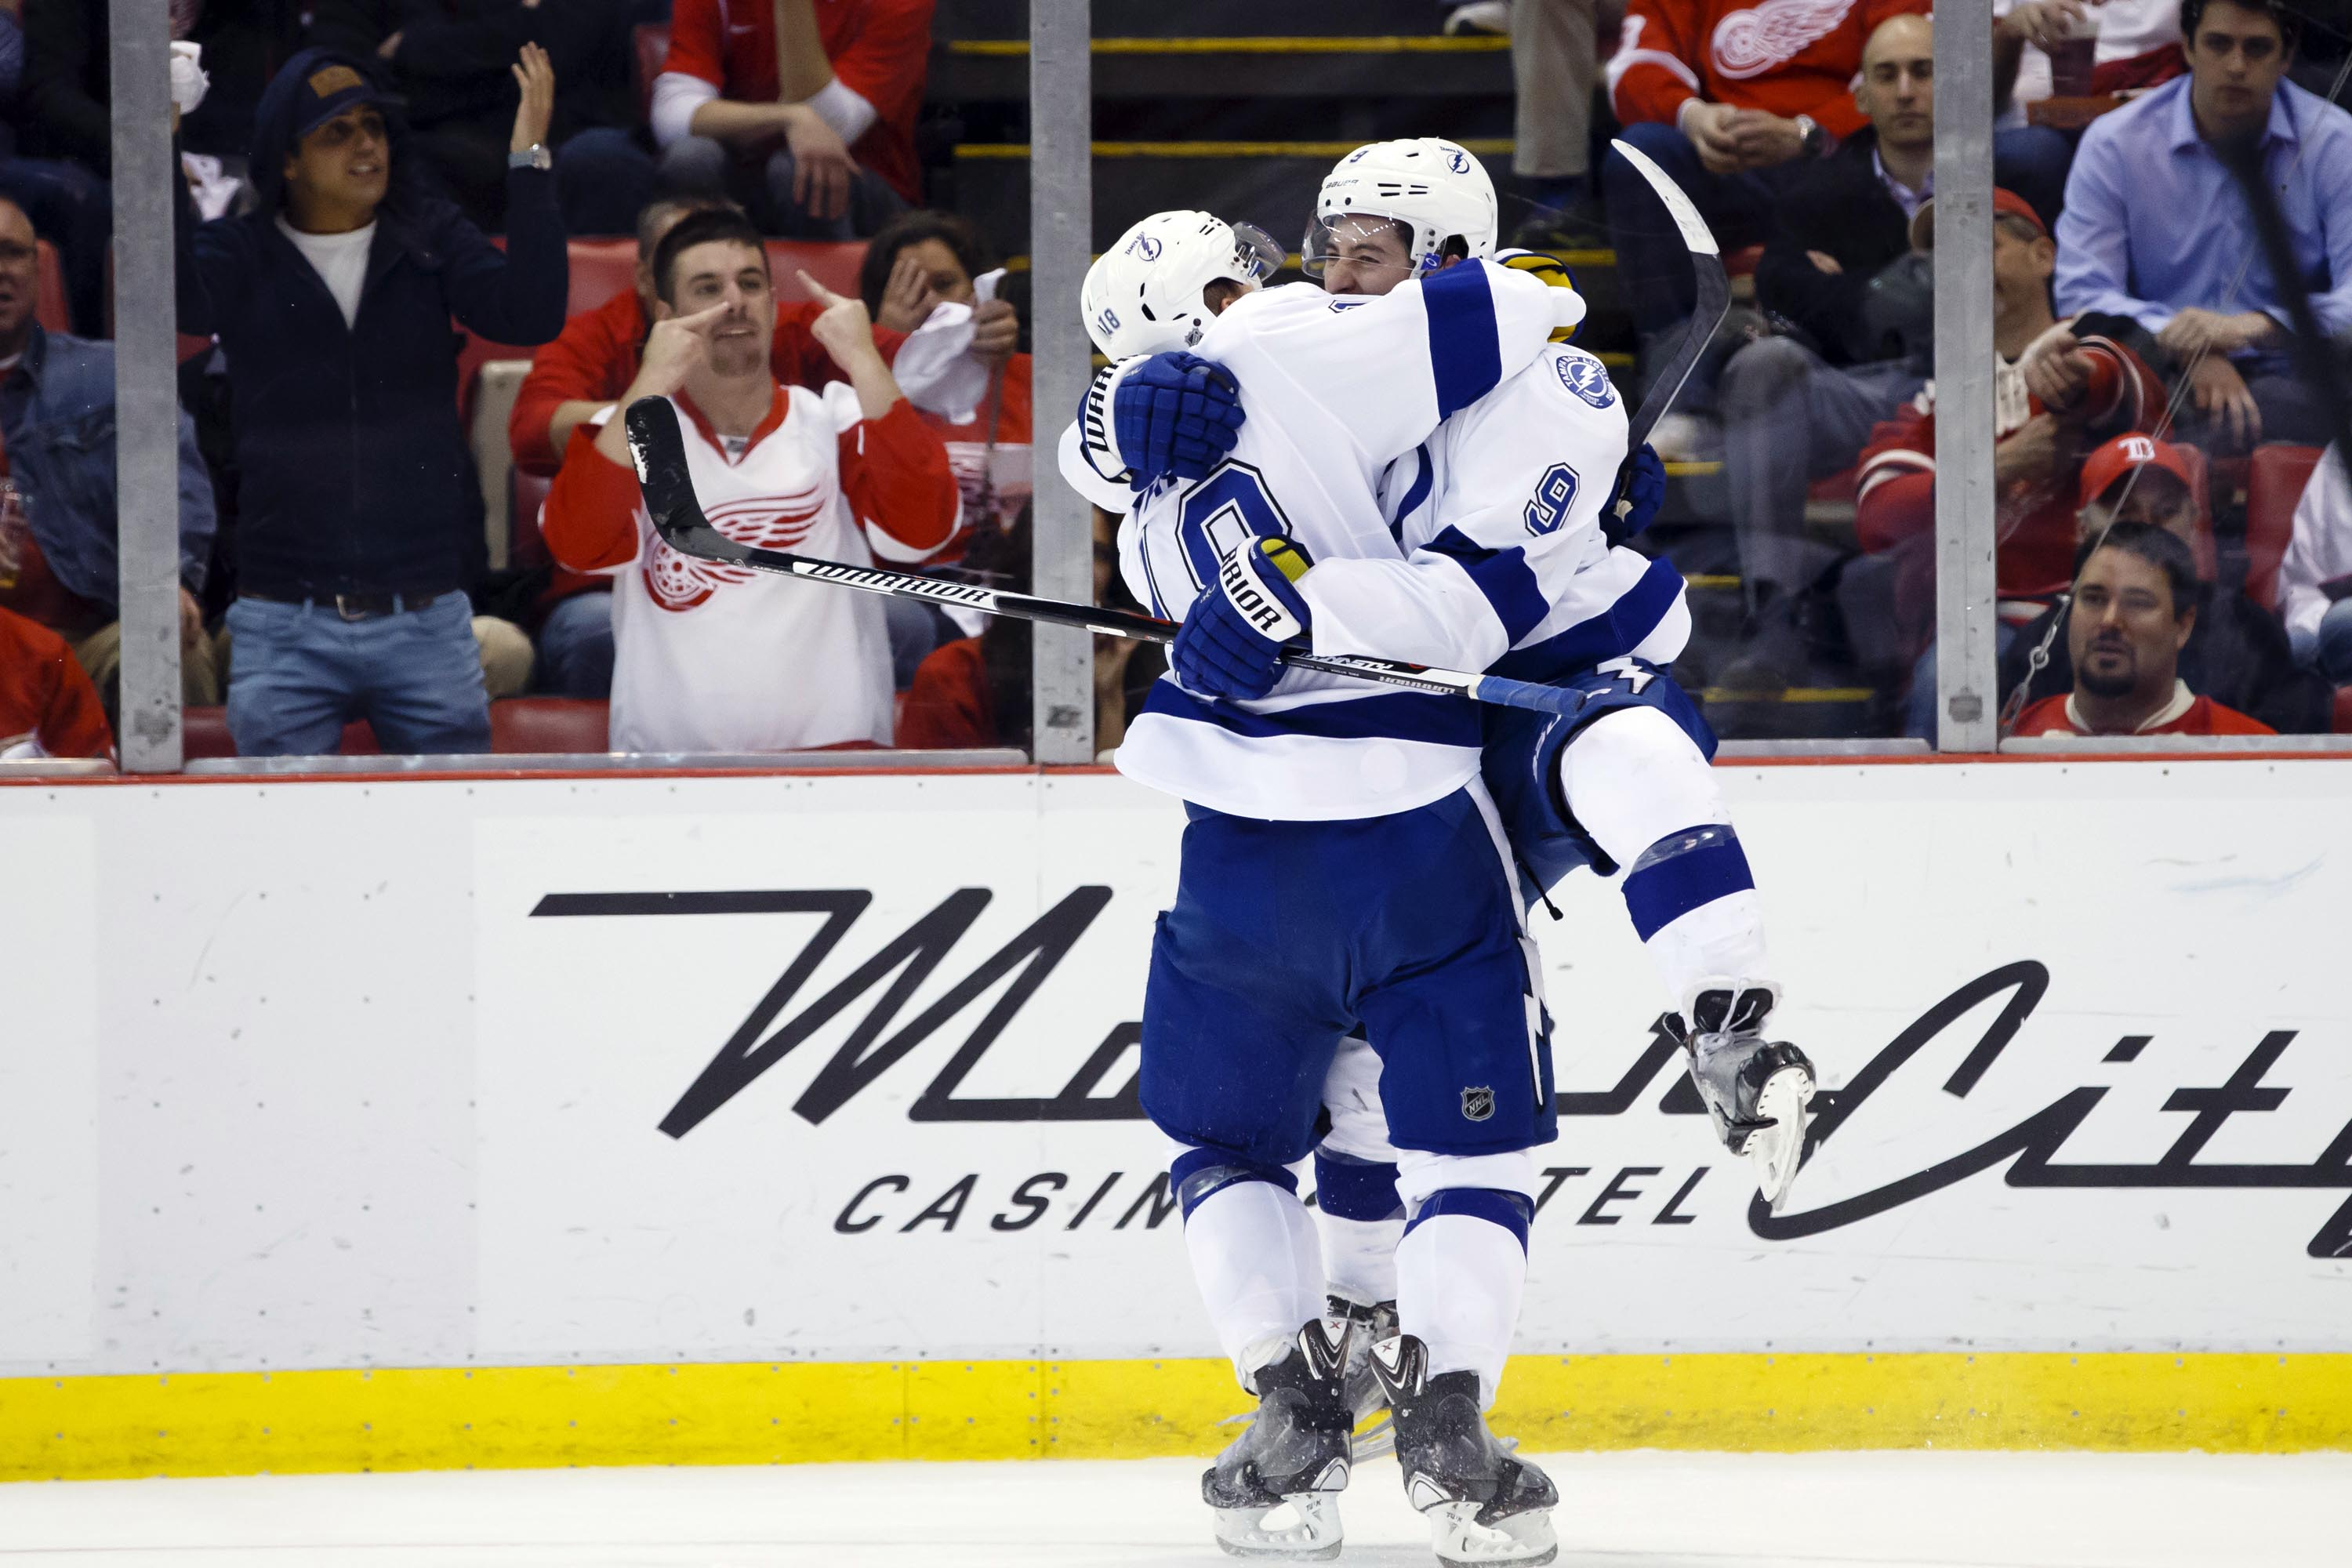 """Post-season goal scoring leader Tyler Johnson (5'9"""") leaps like a child into the arms of a lower scoring, taller teammate"""